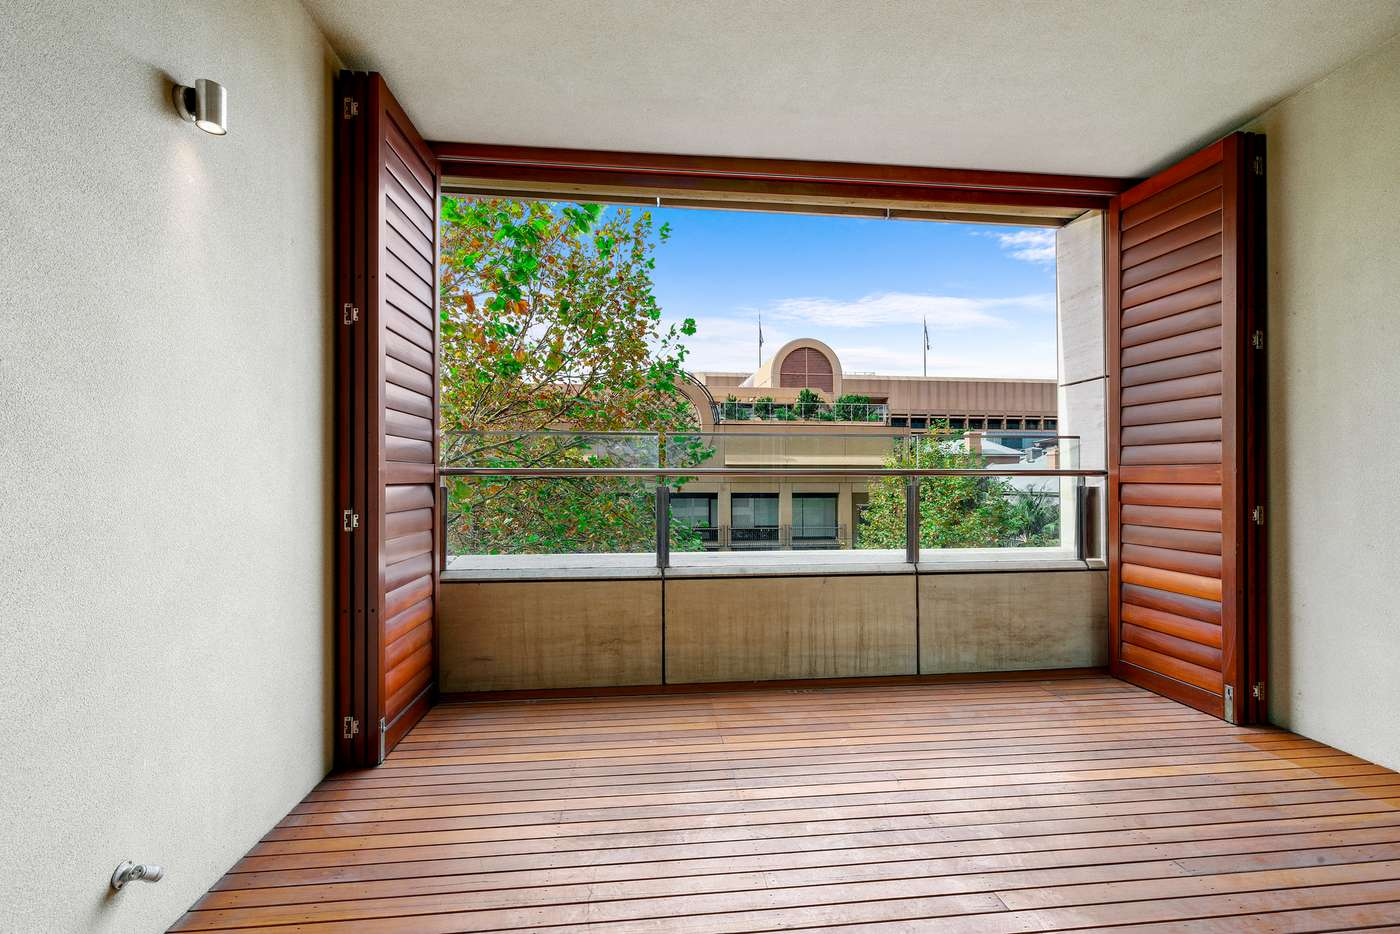 Main view of Homely apartment listing, 303/185 Macquarie Street, Sydney NSW 2000